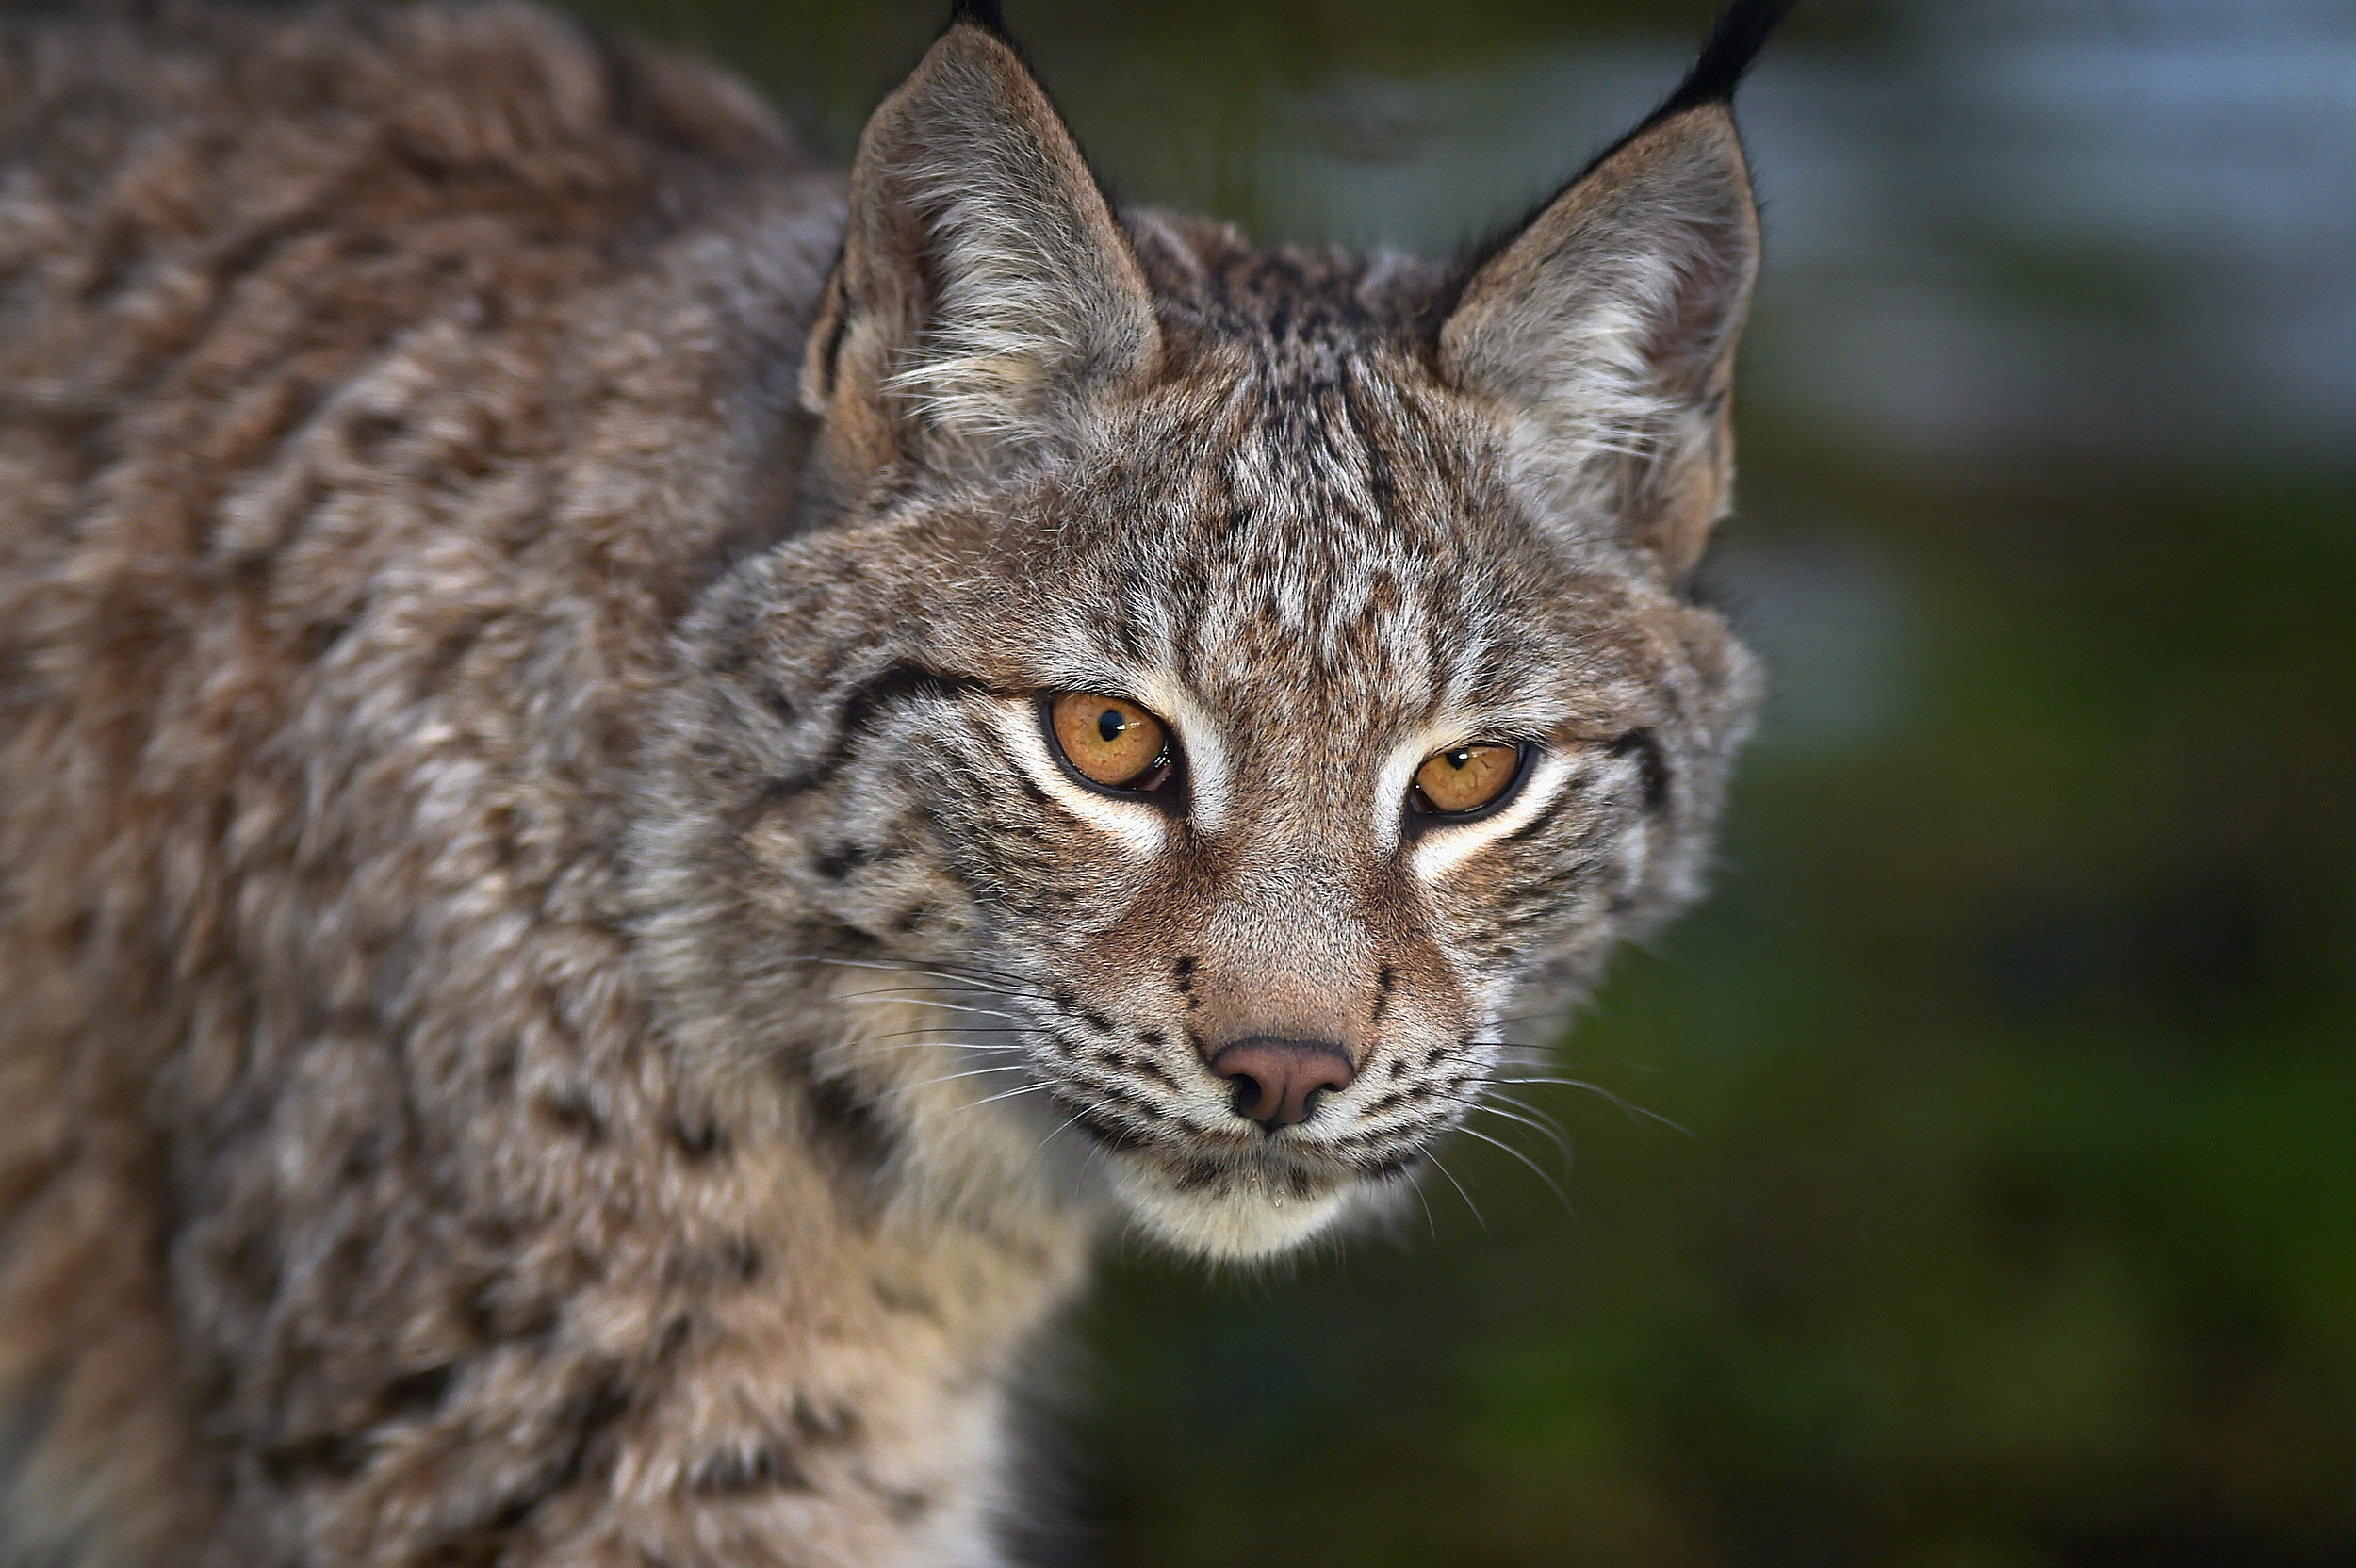 Rare Lynx Spotted on Slopes of Durango Ski Resort